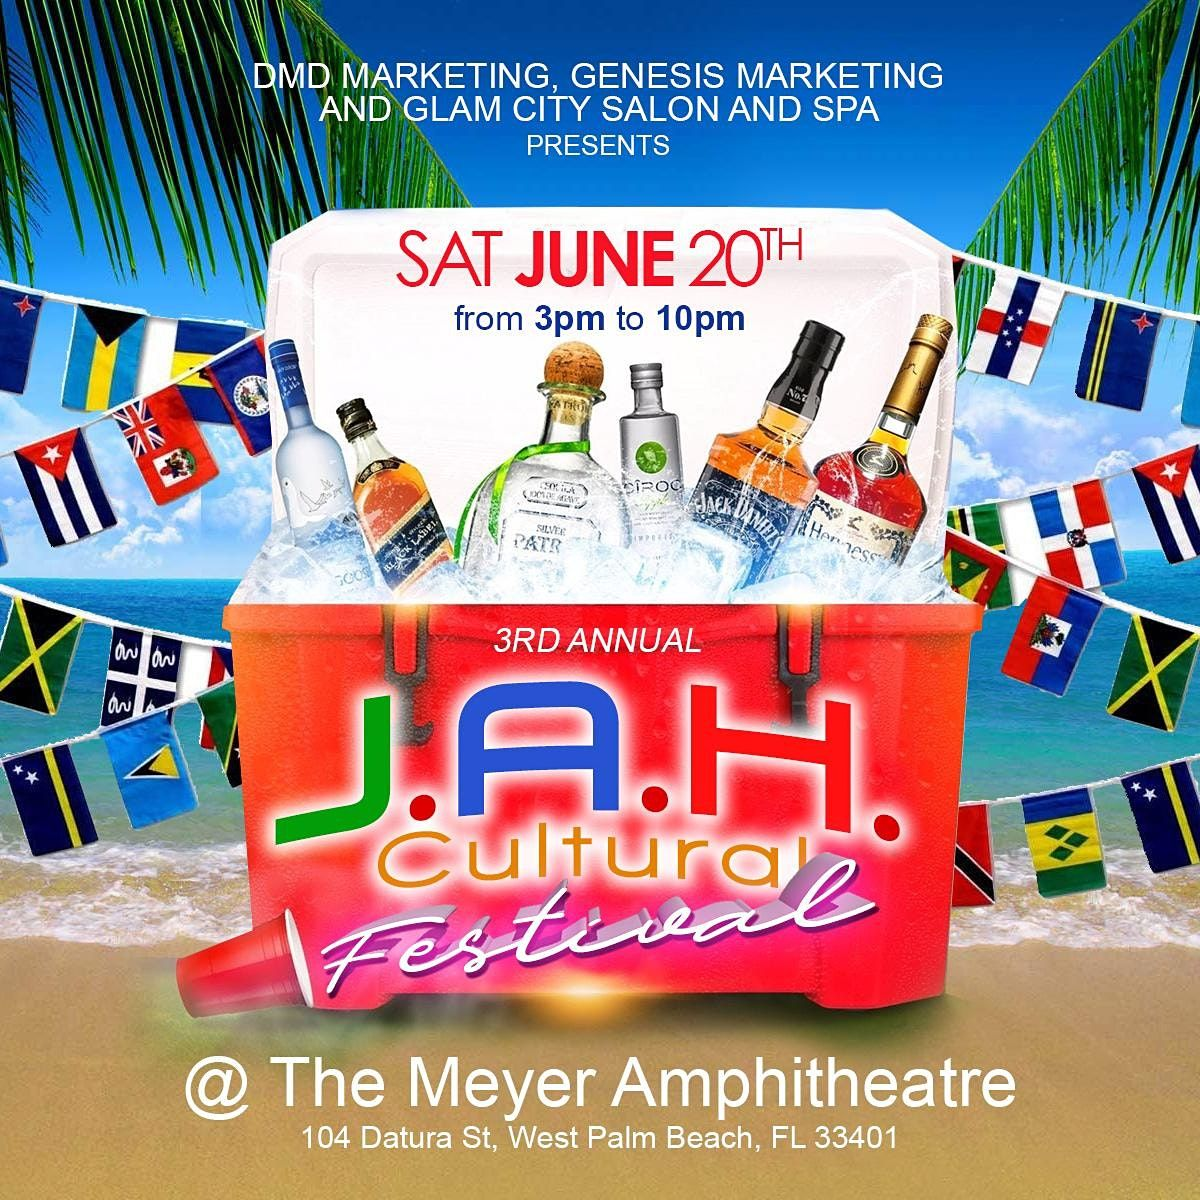 3rd Annual J.A.H Cultural Festival, 26 June | Event in West Palm Beach | AllEvents.in